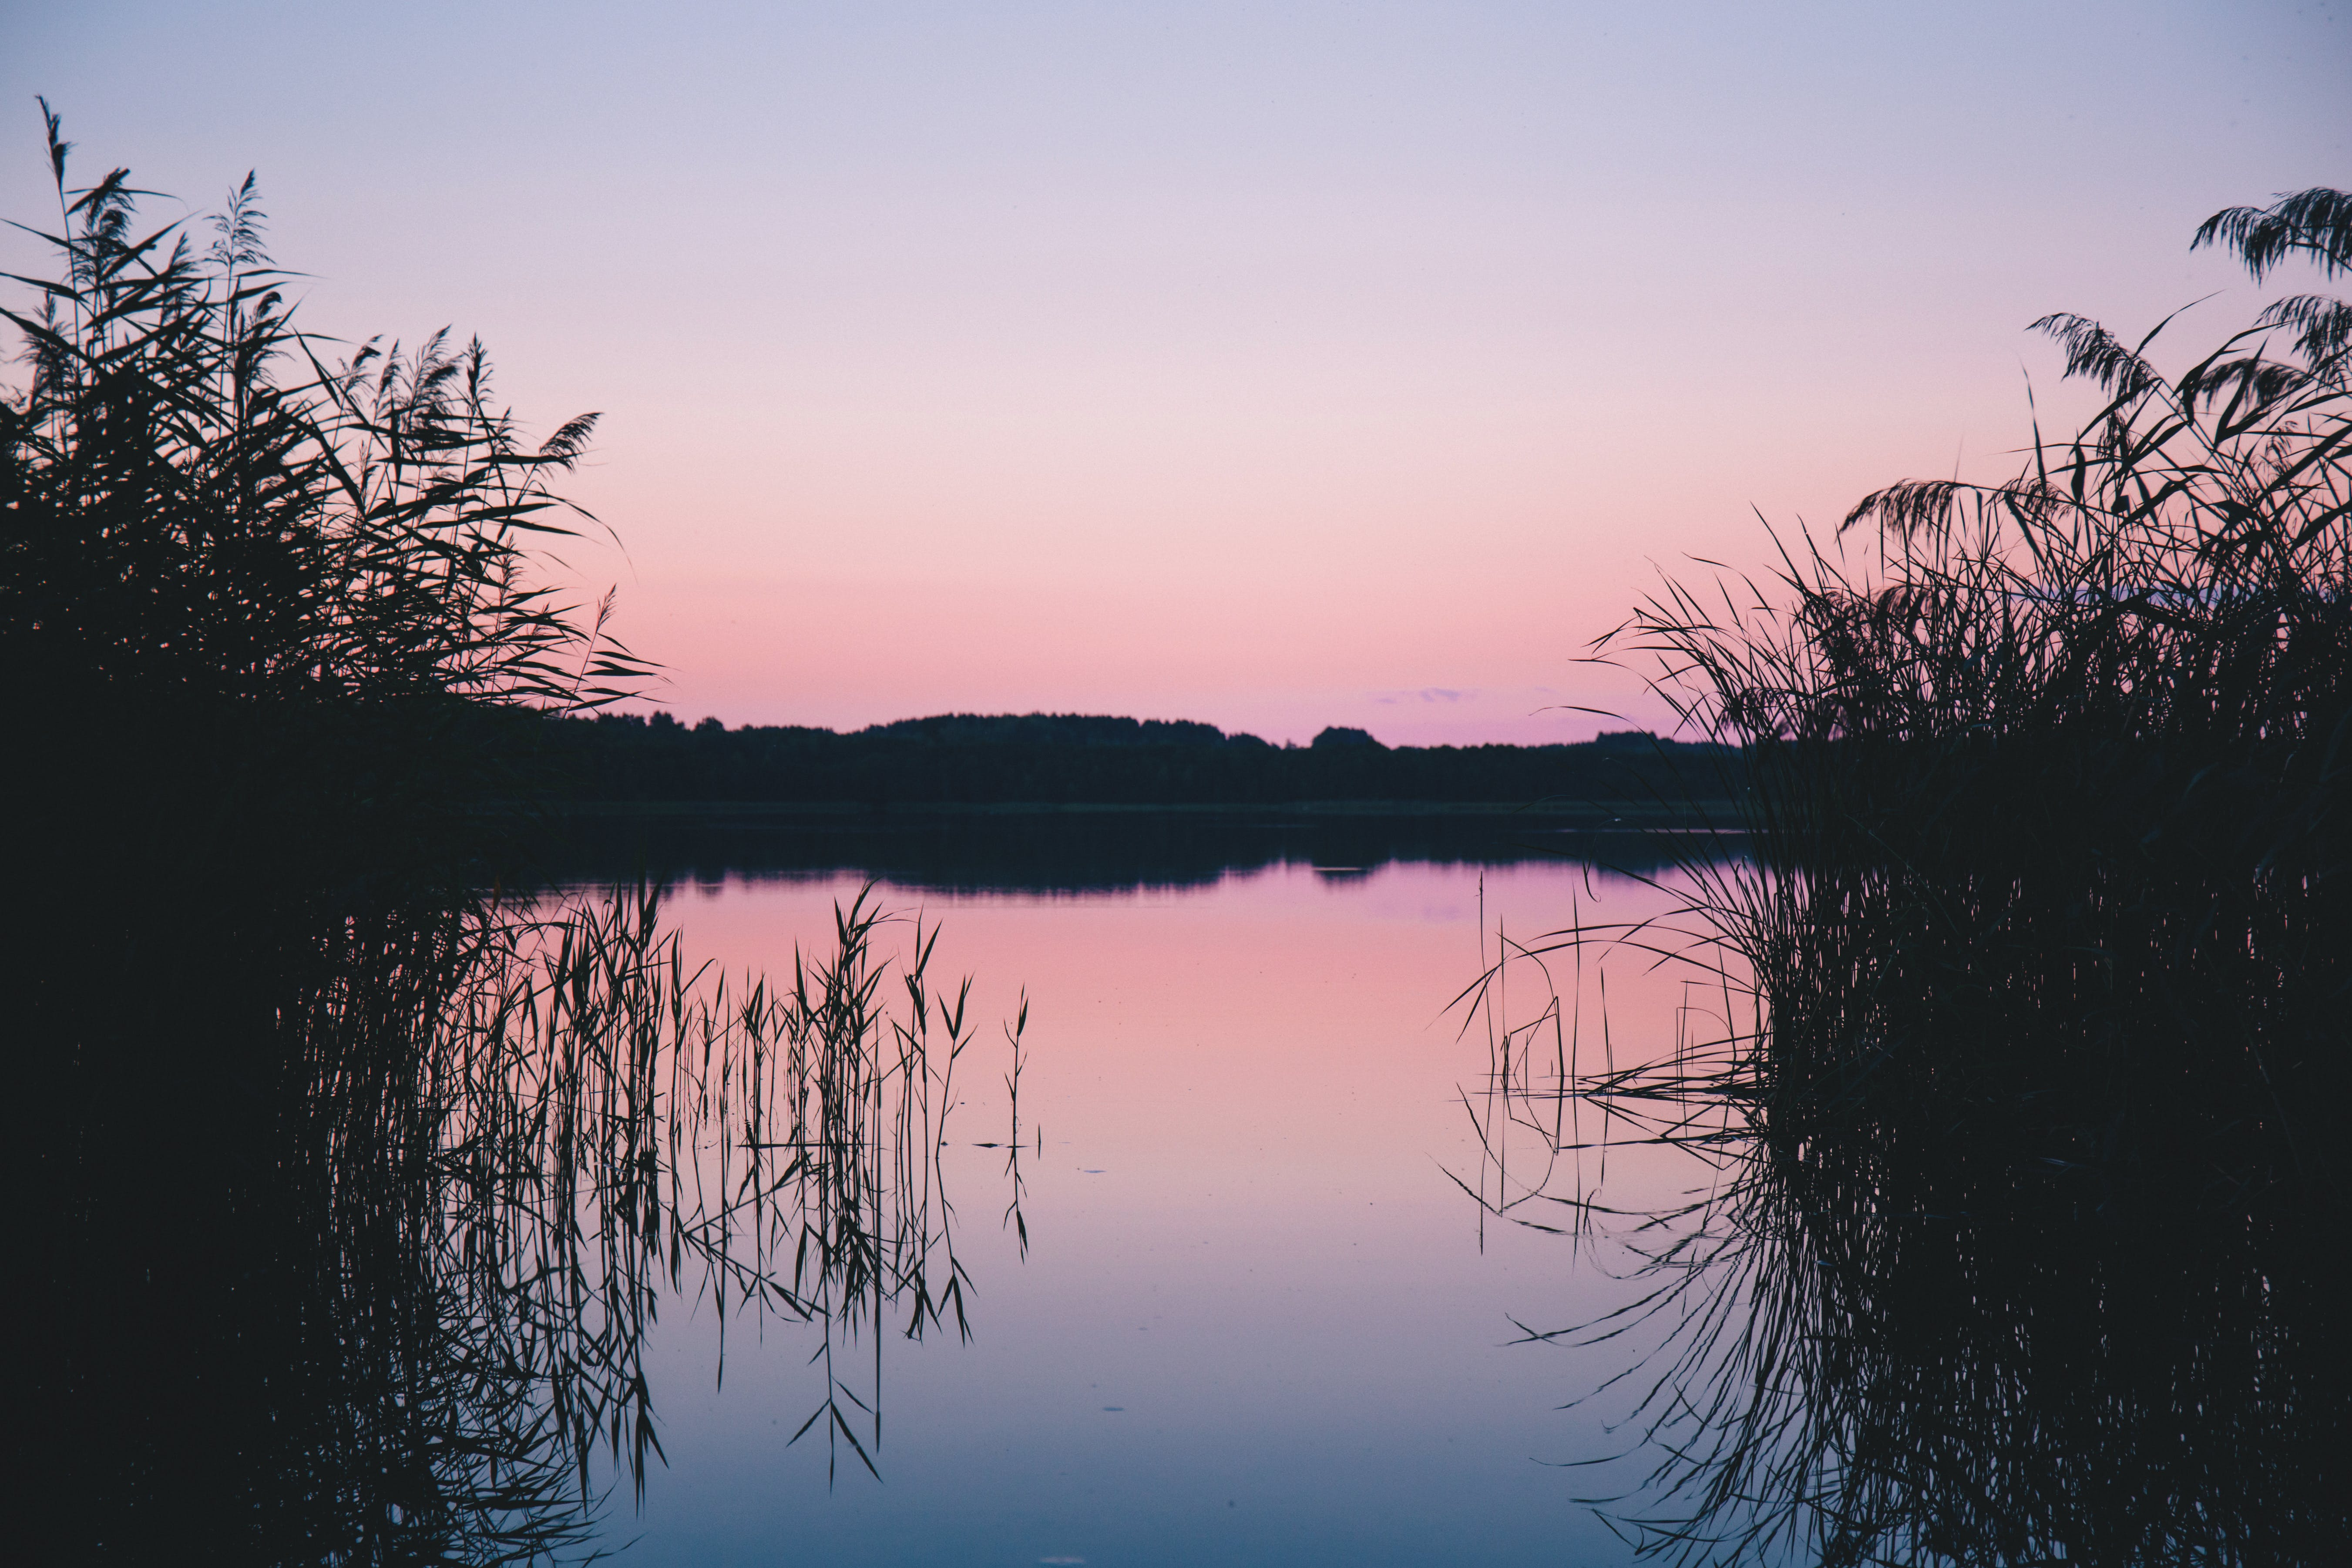 Silhouette of Grass on Body of Water